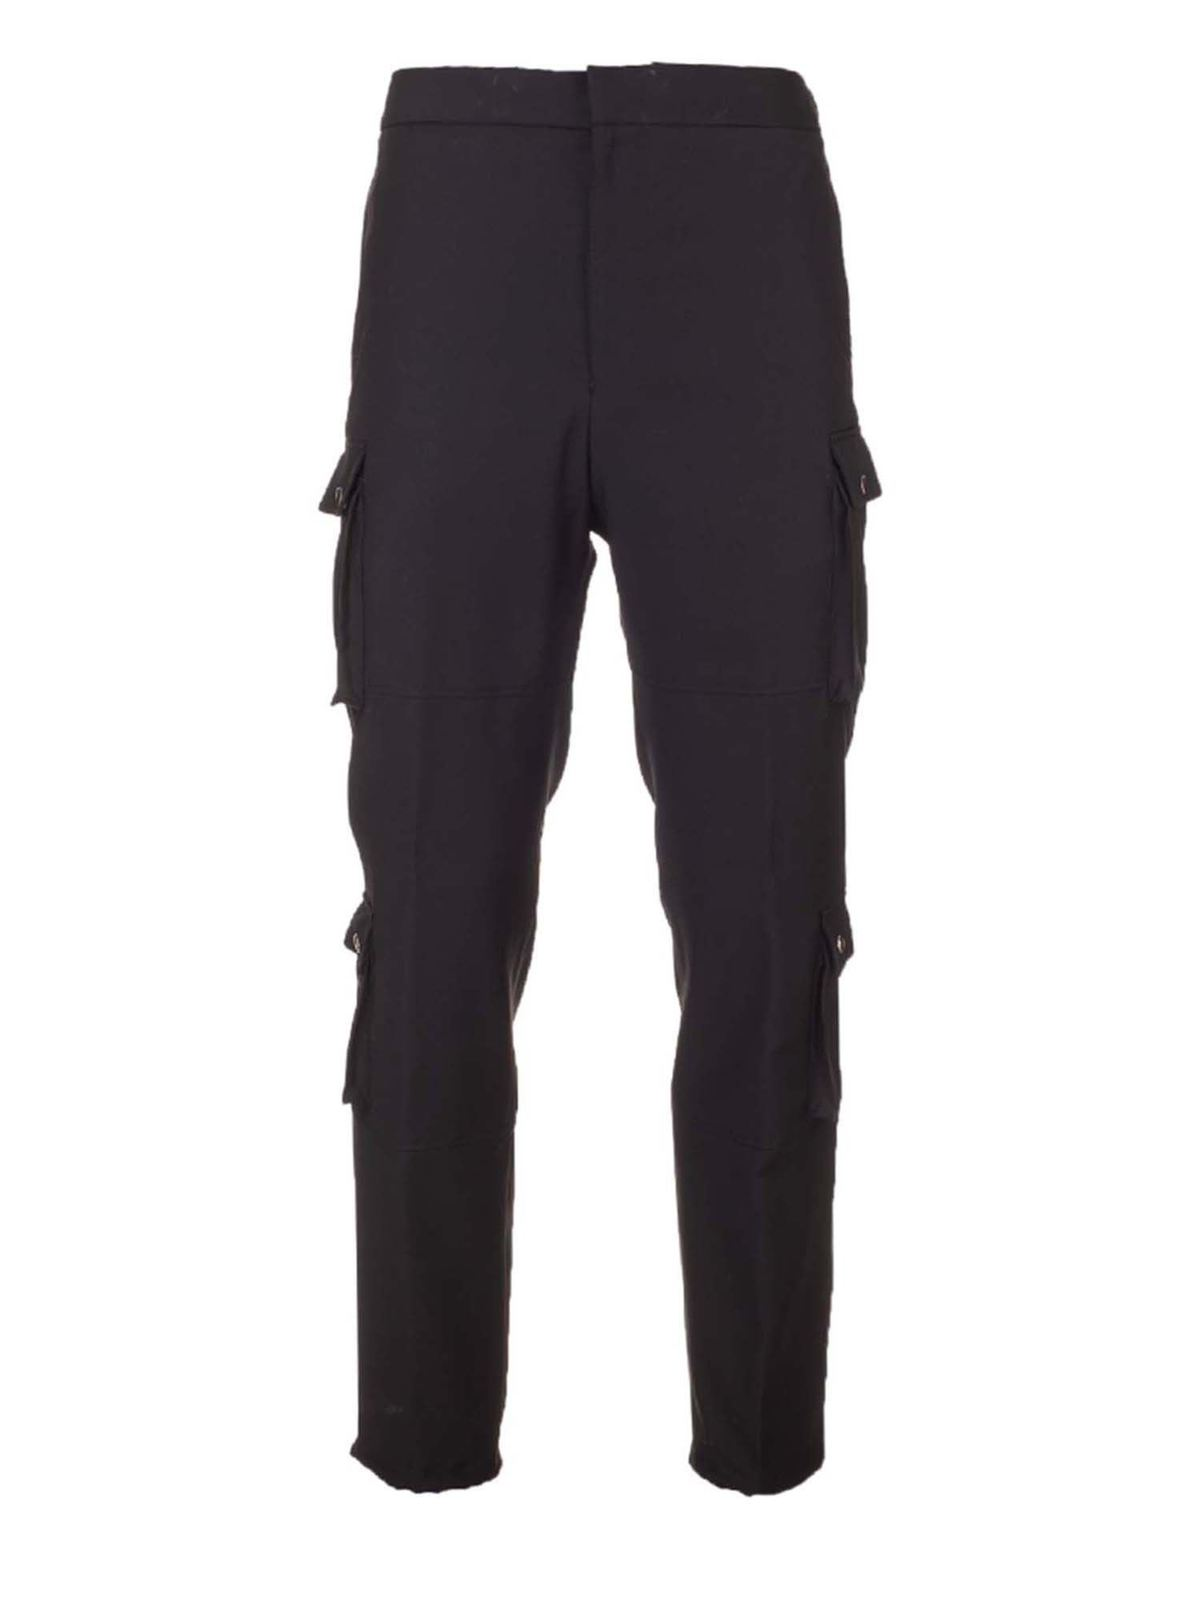 Givenchy Pants CARGO PANTS IN BLACK